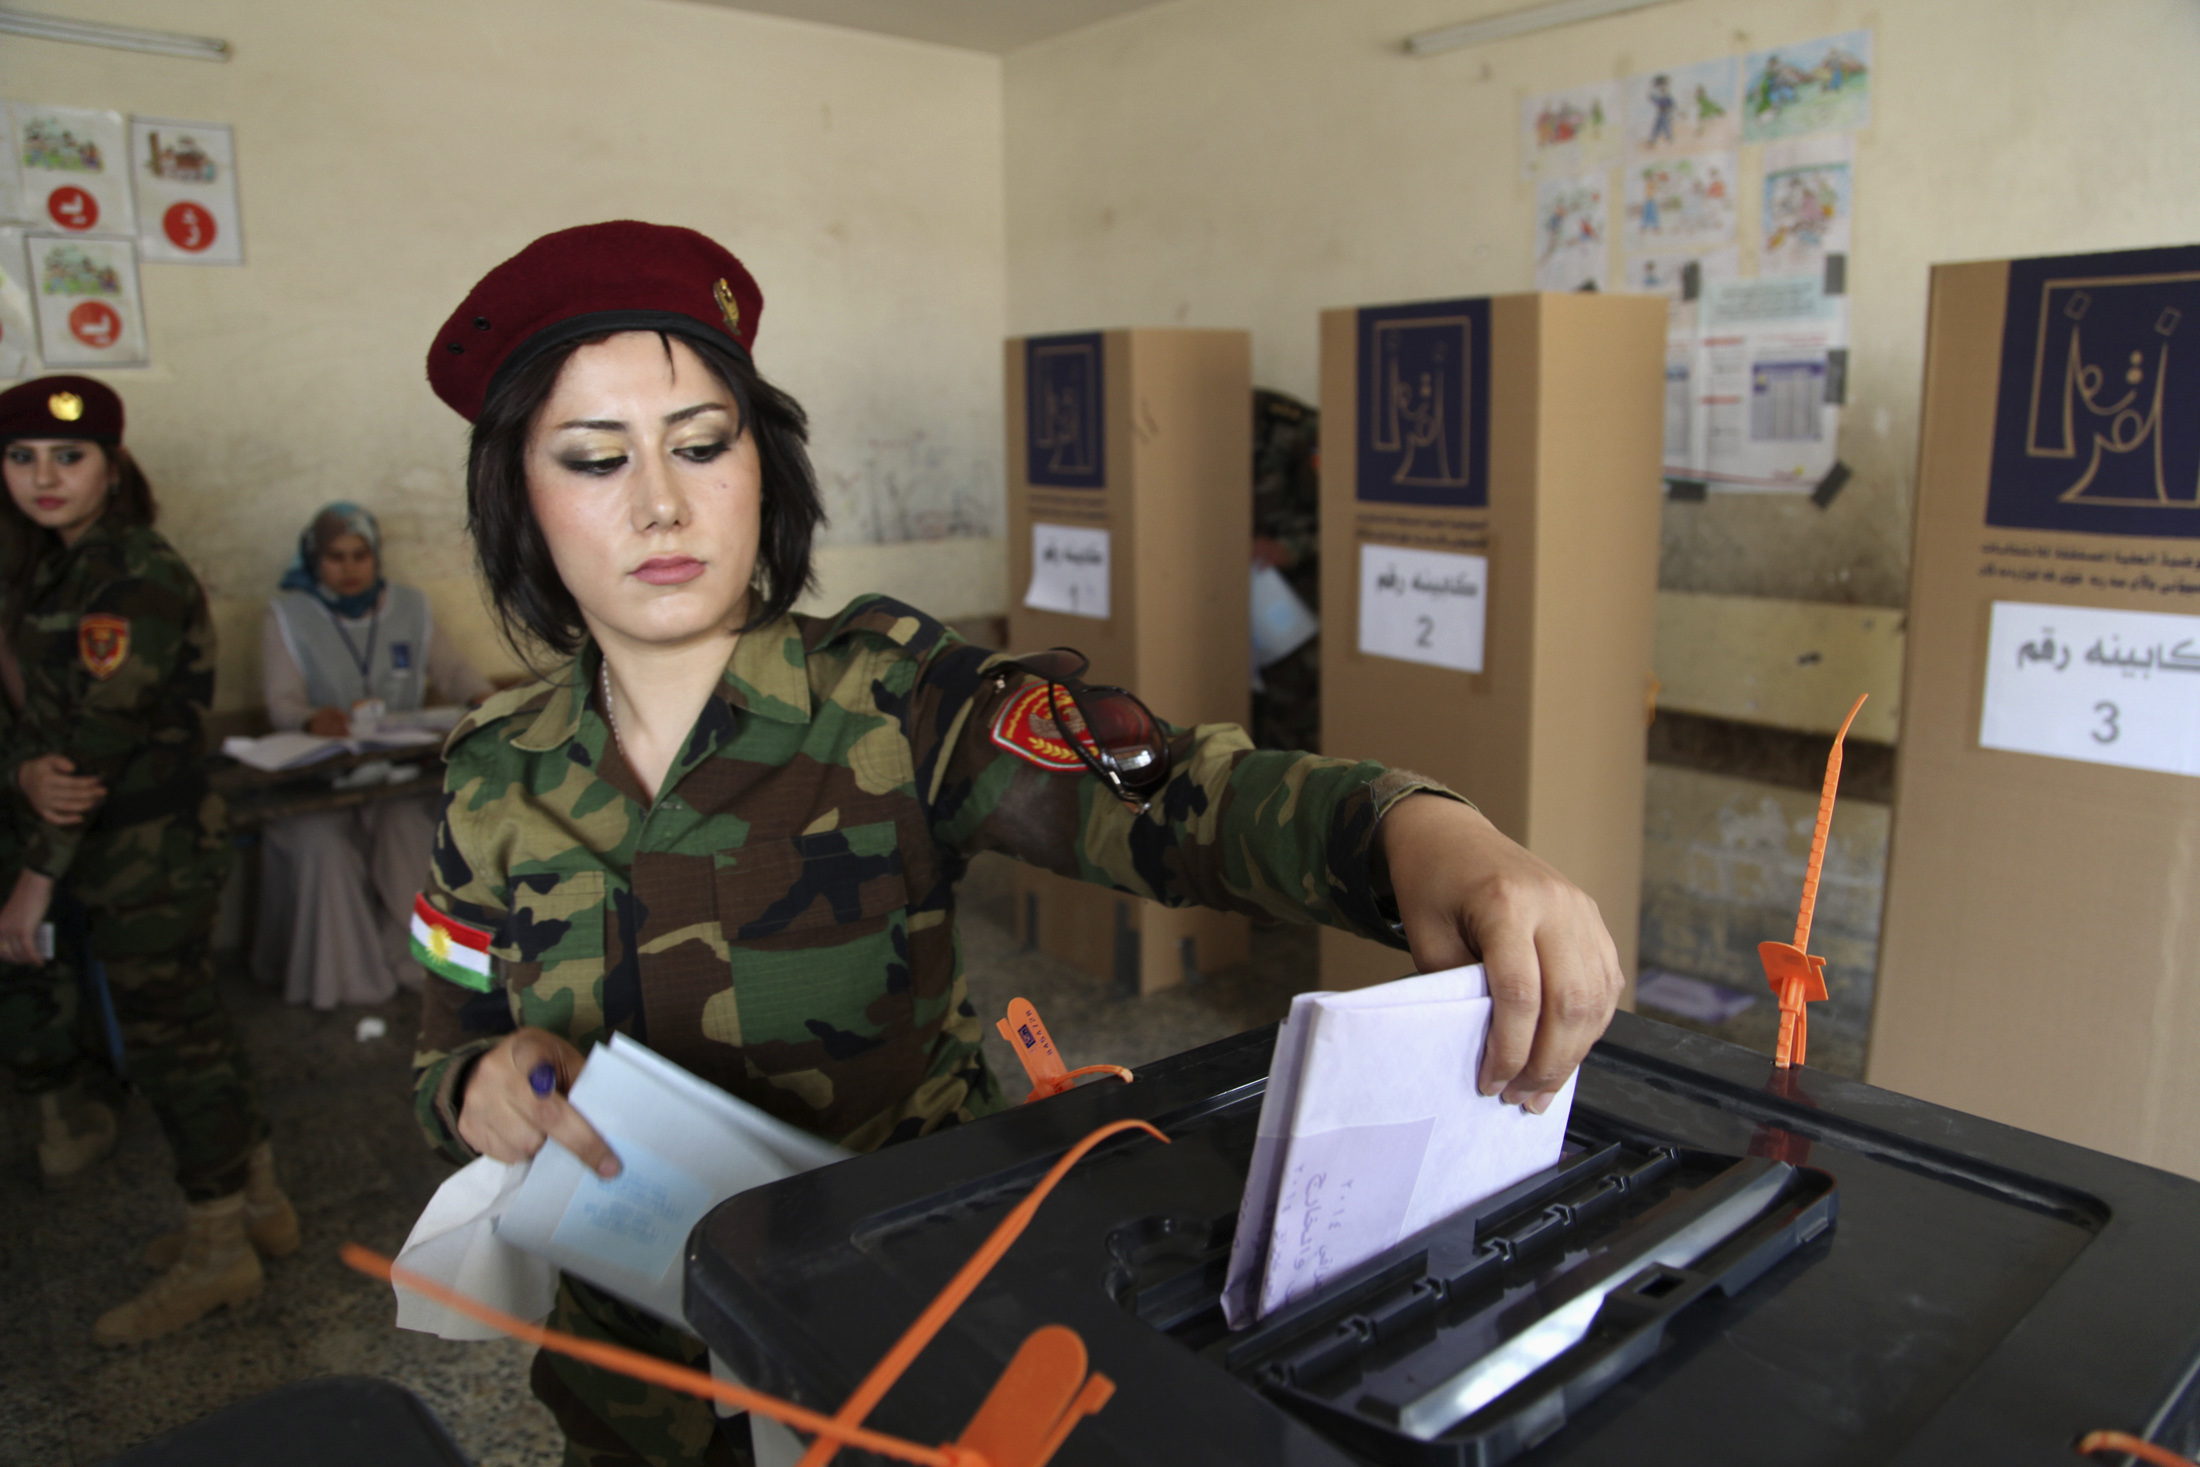 A member of Kurdish security forces casts her ballot inside a polling station during early voting for the parliamentary election in Irbil, in Iraq's Kurdistan region, on April 28, 2014.